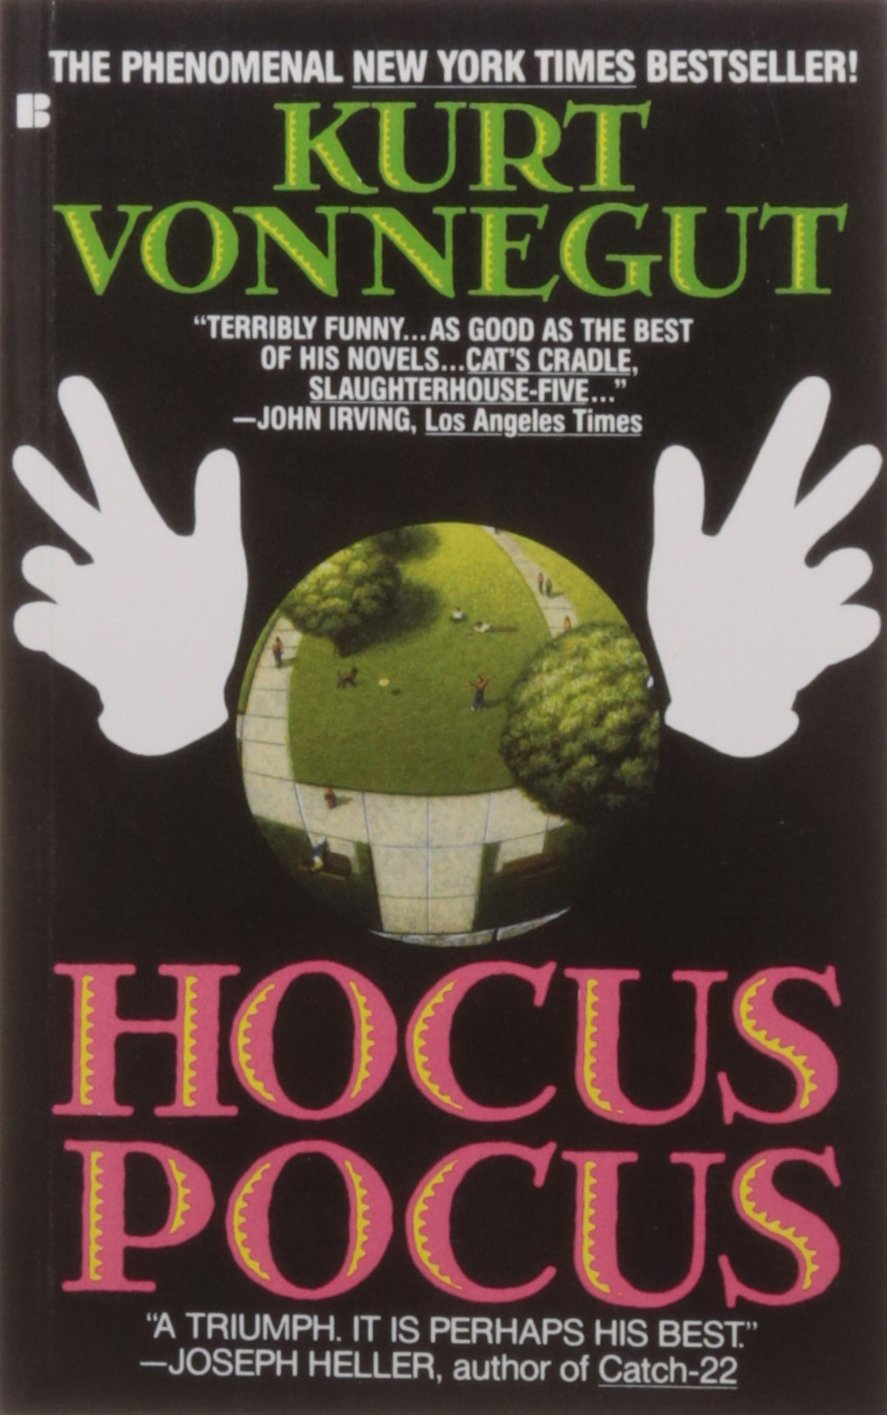 hocus pocus 1990 Every Kurt Vonnegut Novel Ranked in Order of Relevance